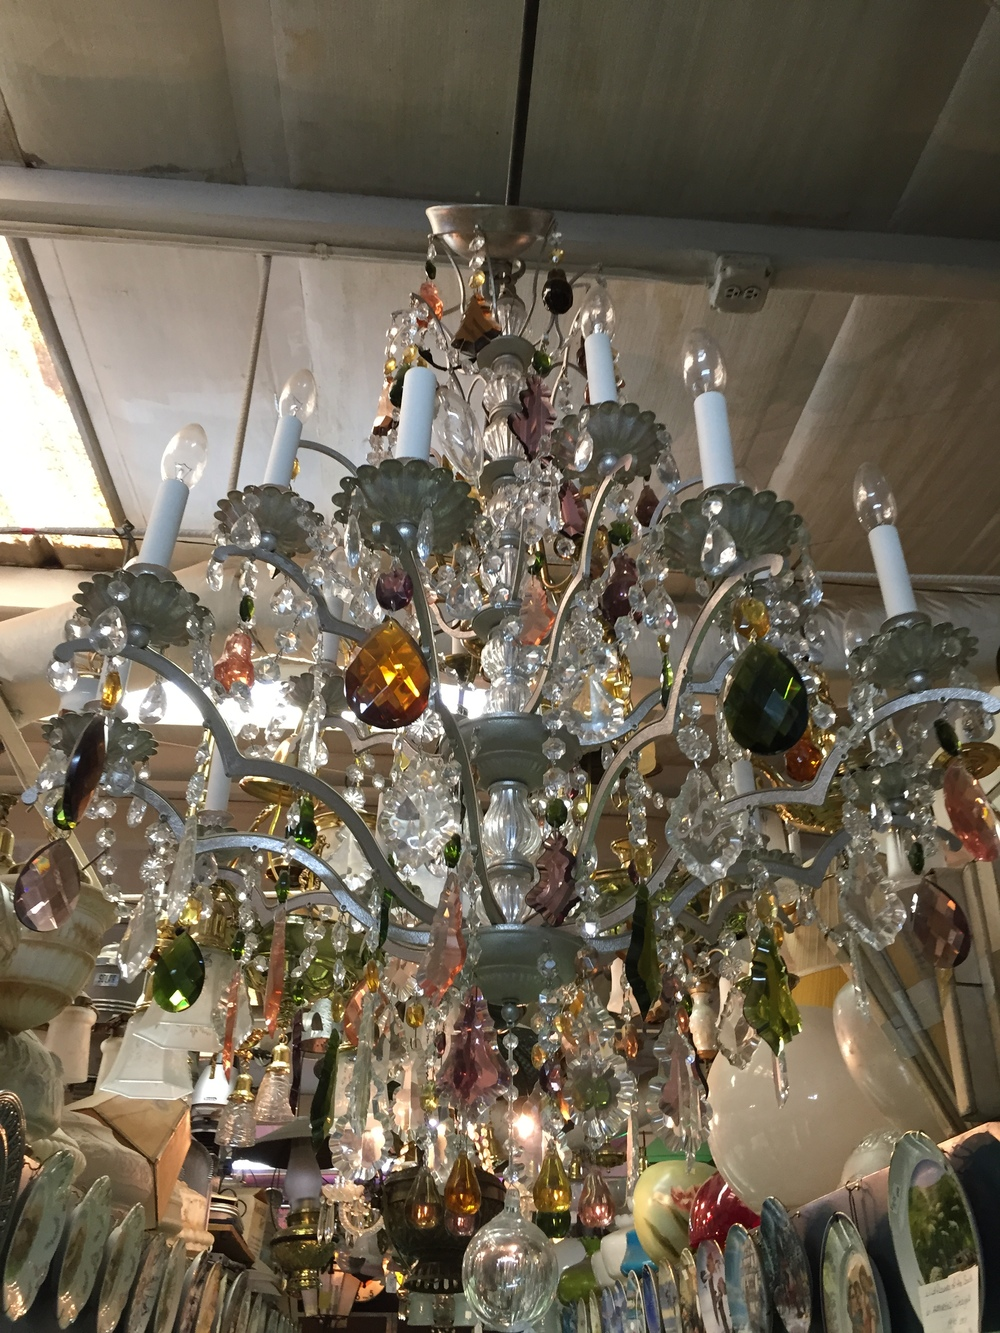 Amber Glass Prism Chandelier.JPG